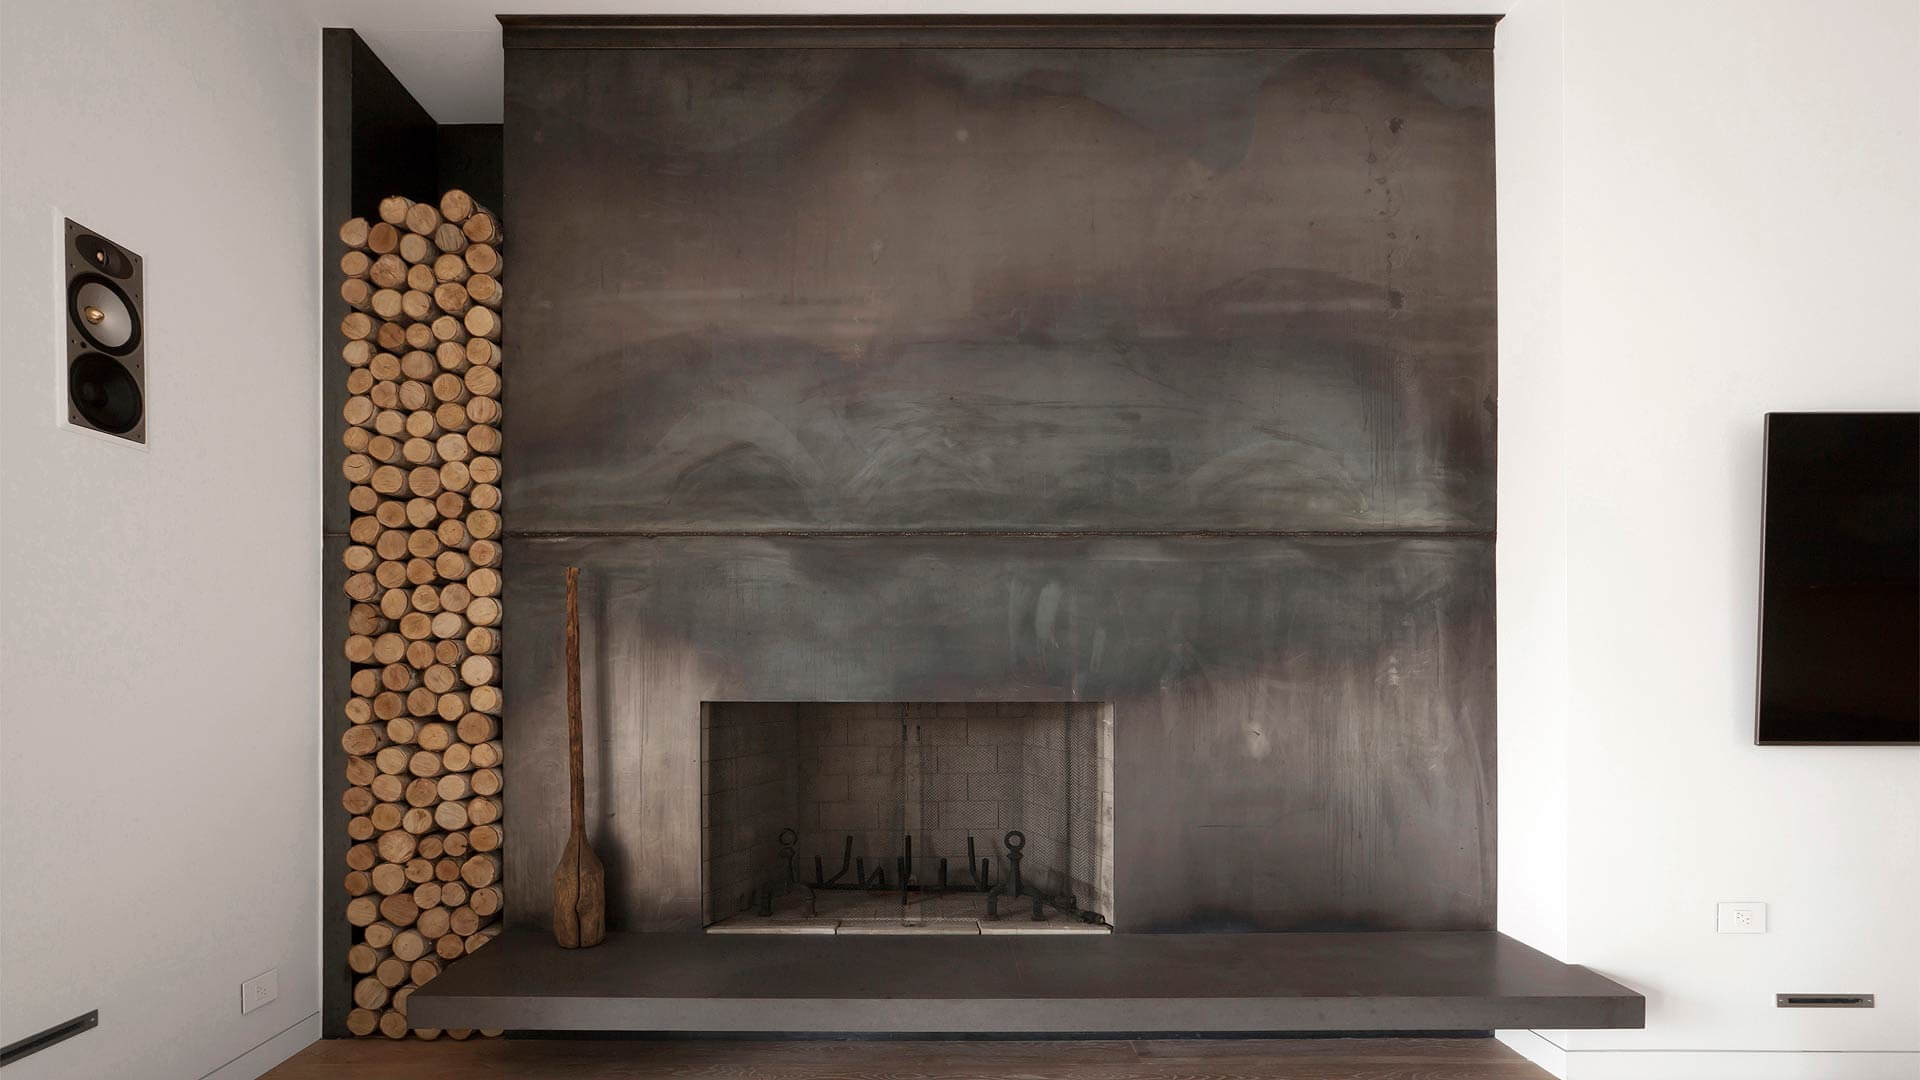 Industrial Steel Fireplace surround with vertical firewood storage slot - Minimalist Modern - Indian Head Park - Chicago, Illinois - HAUS | Architecture For Modern Lifestyles, Christopher Short, Indianapolis Architect with Joe Trojanowski